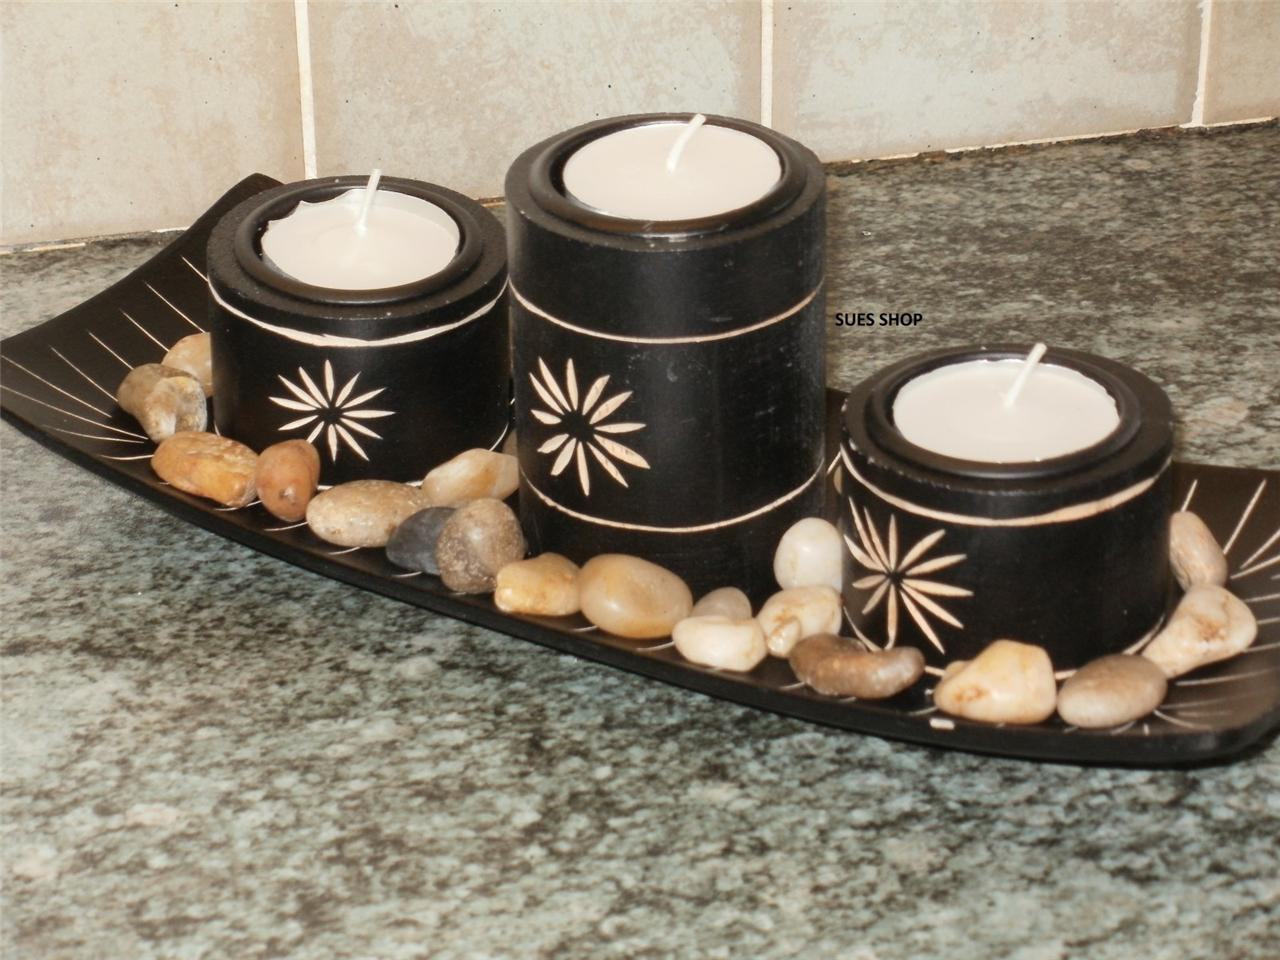 3-BLACK-BAMBOO-CANDLE-HOLDERS-TRAY-POLISHED-STONES-NEW-IN-BOX-GREAT-GIFT-SET